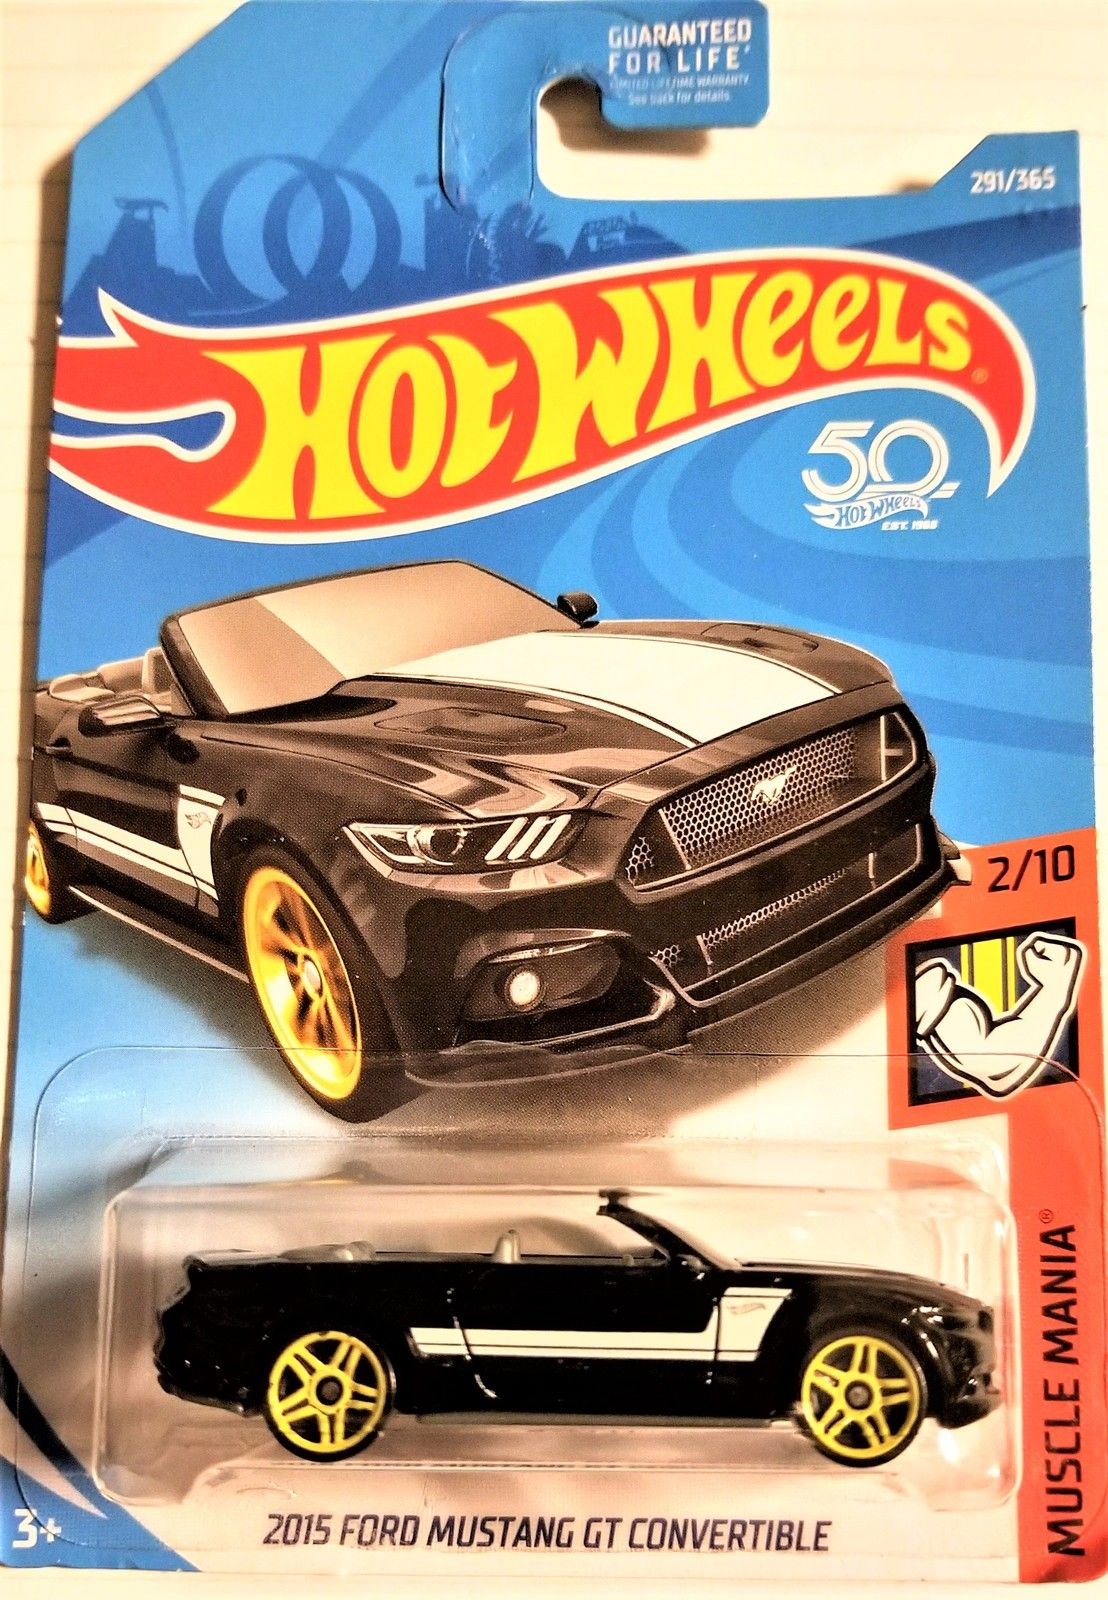 Hot wheels 50th anniversary 2015 ford mustang gt convertible muscle mania